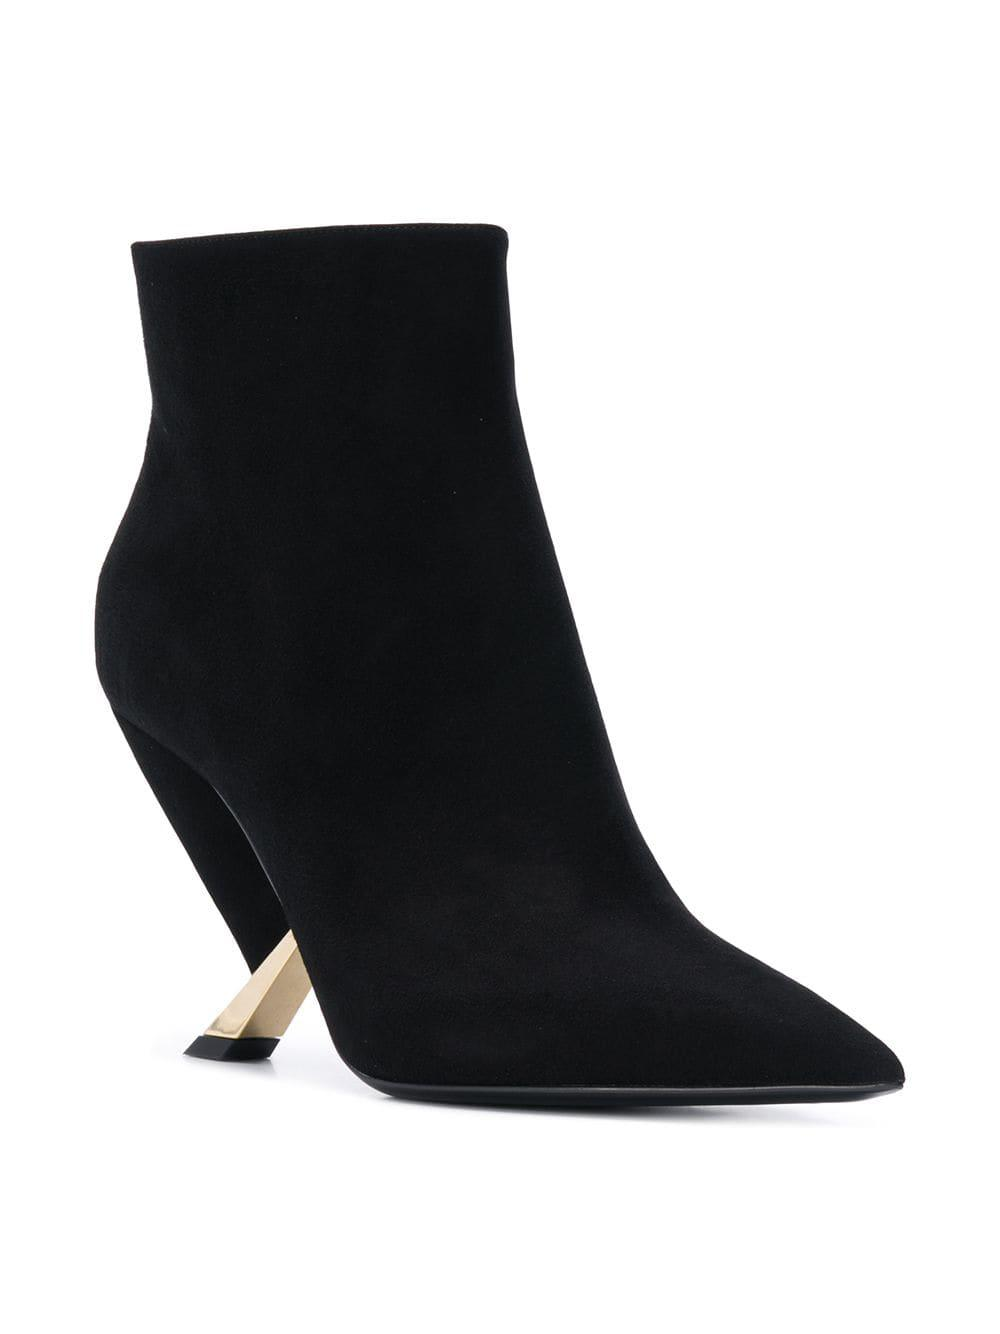 6fff137d49ea Lyst - Casadei Sculpted Heel Ankle Boots in Black